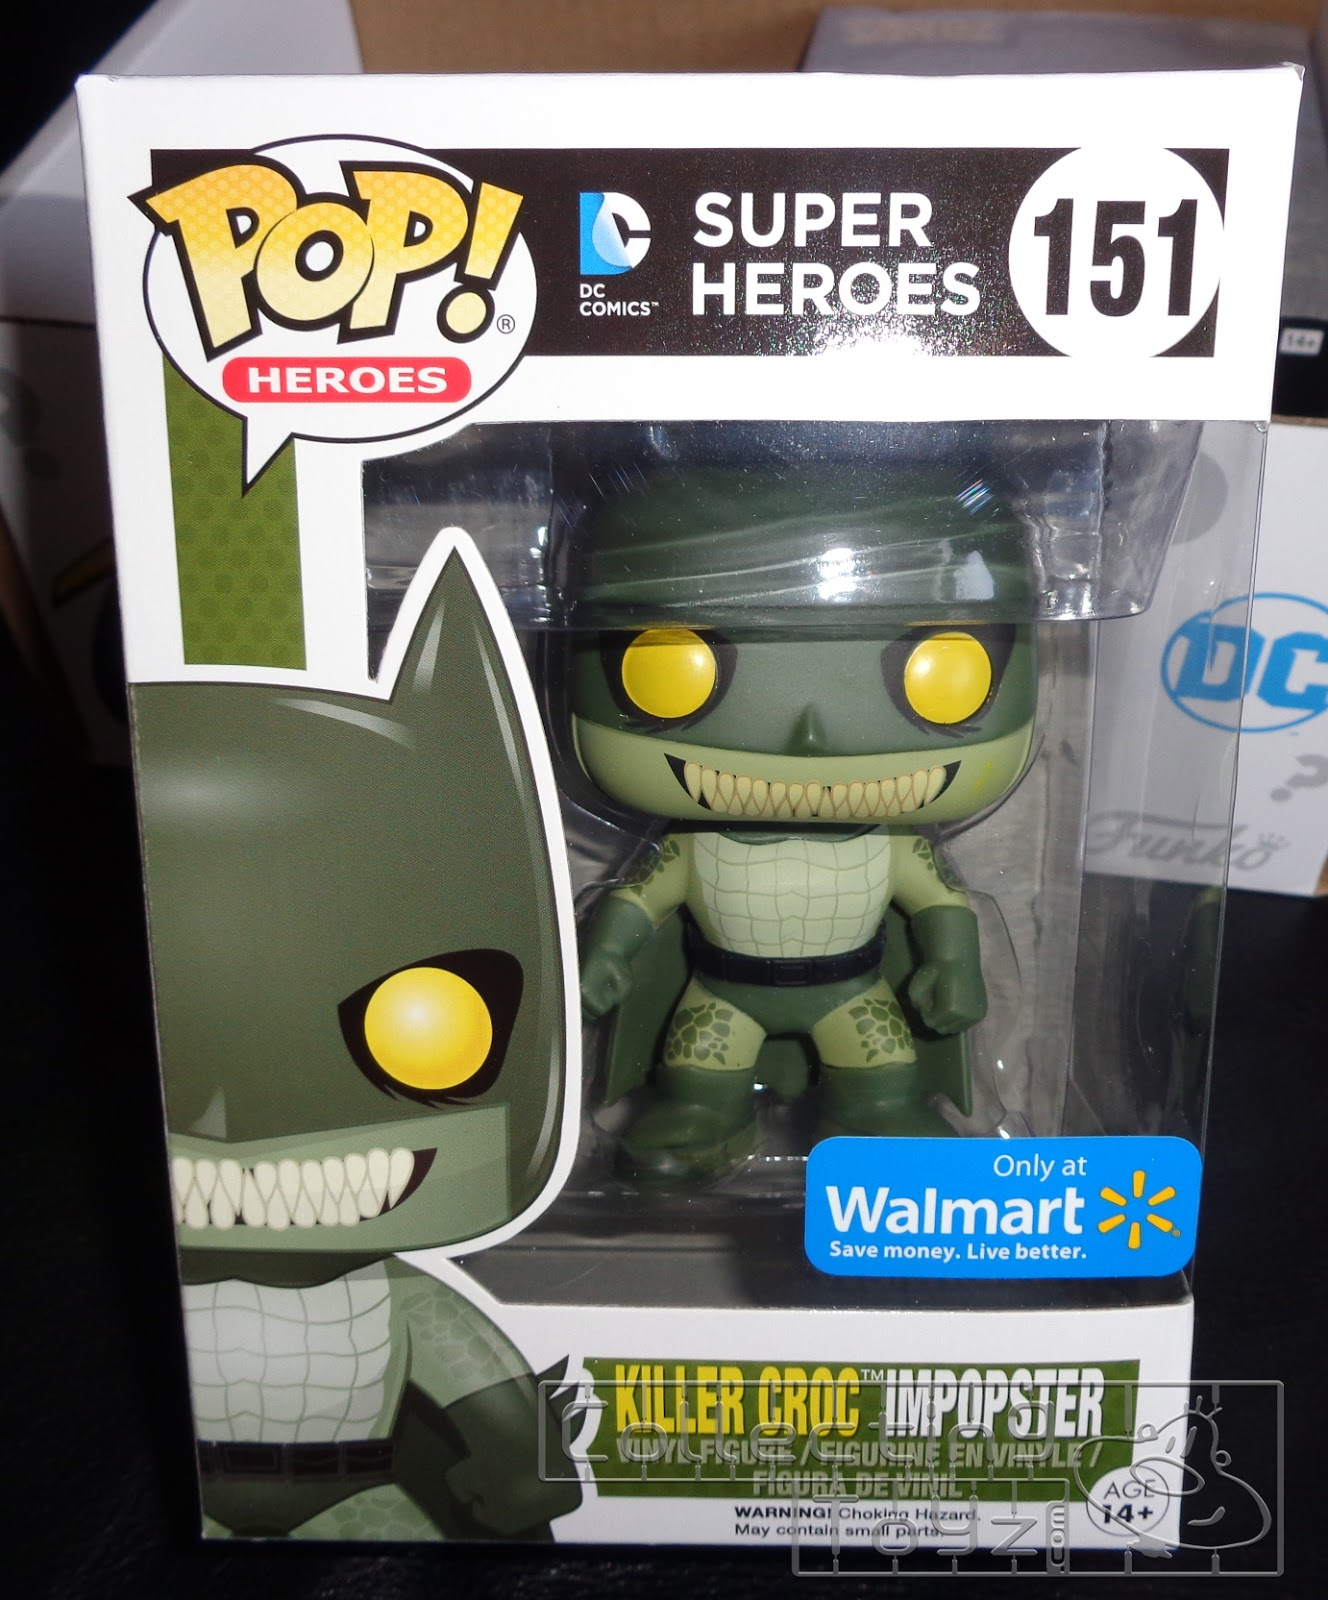 Collecting Toyz: Walmart Black Friday Exclusive DC Mystery Box